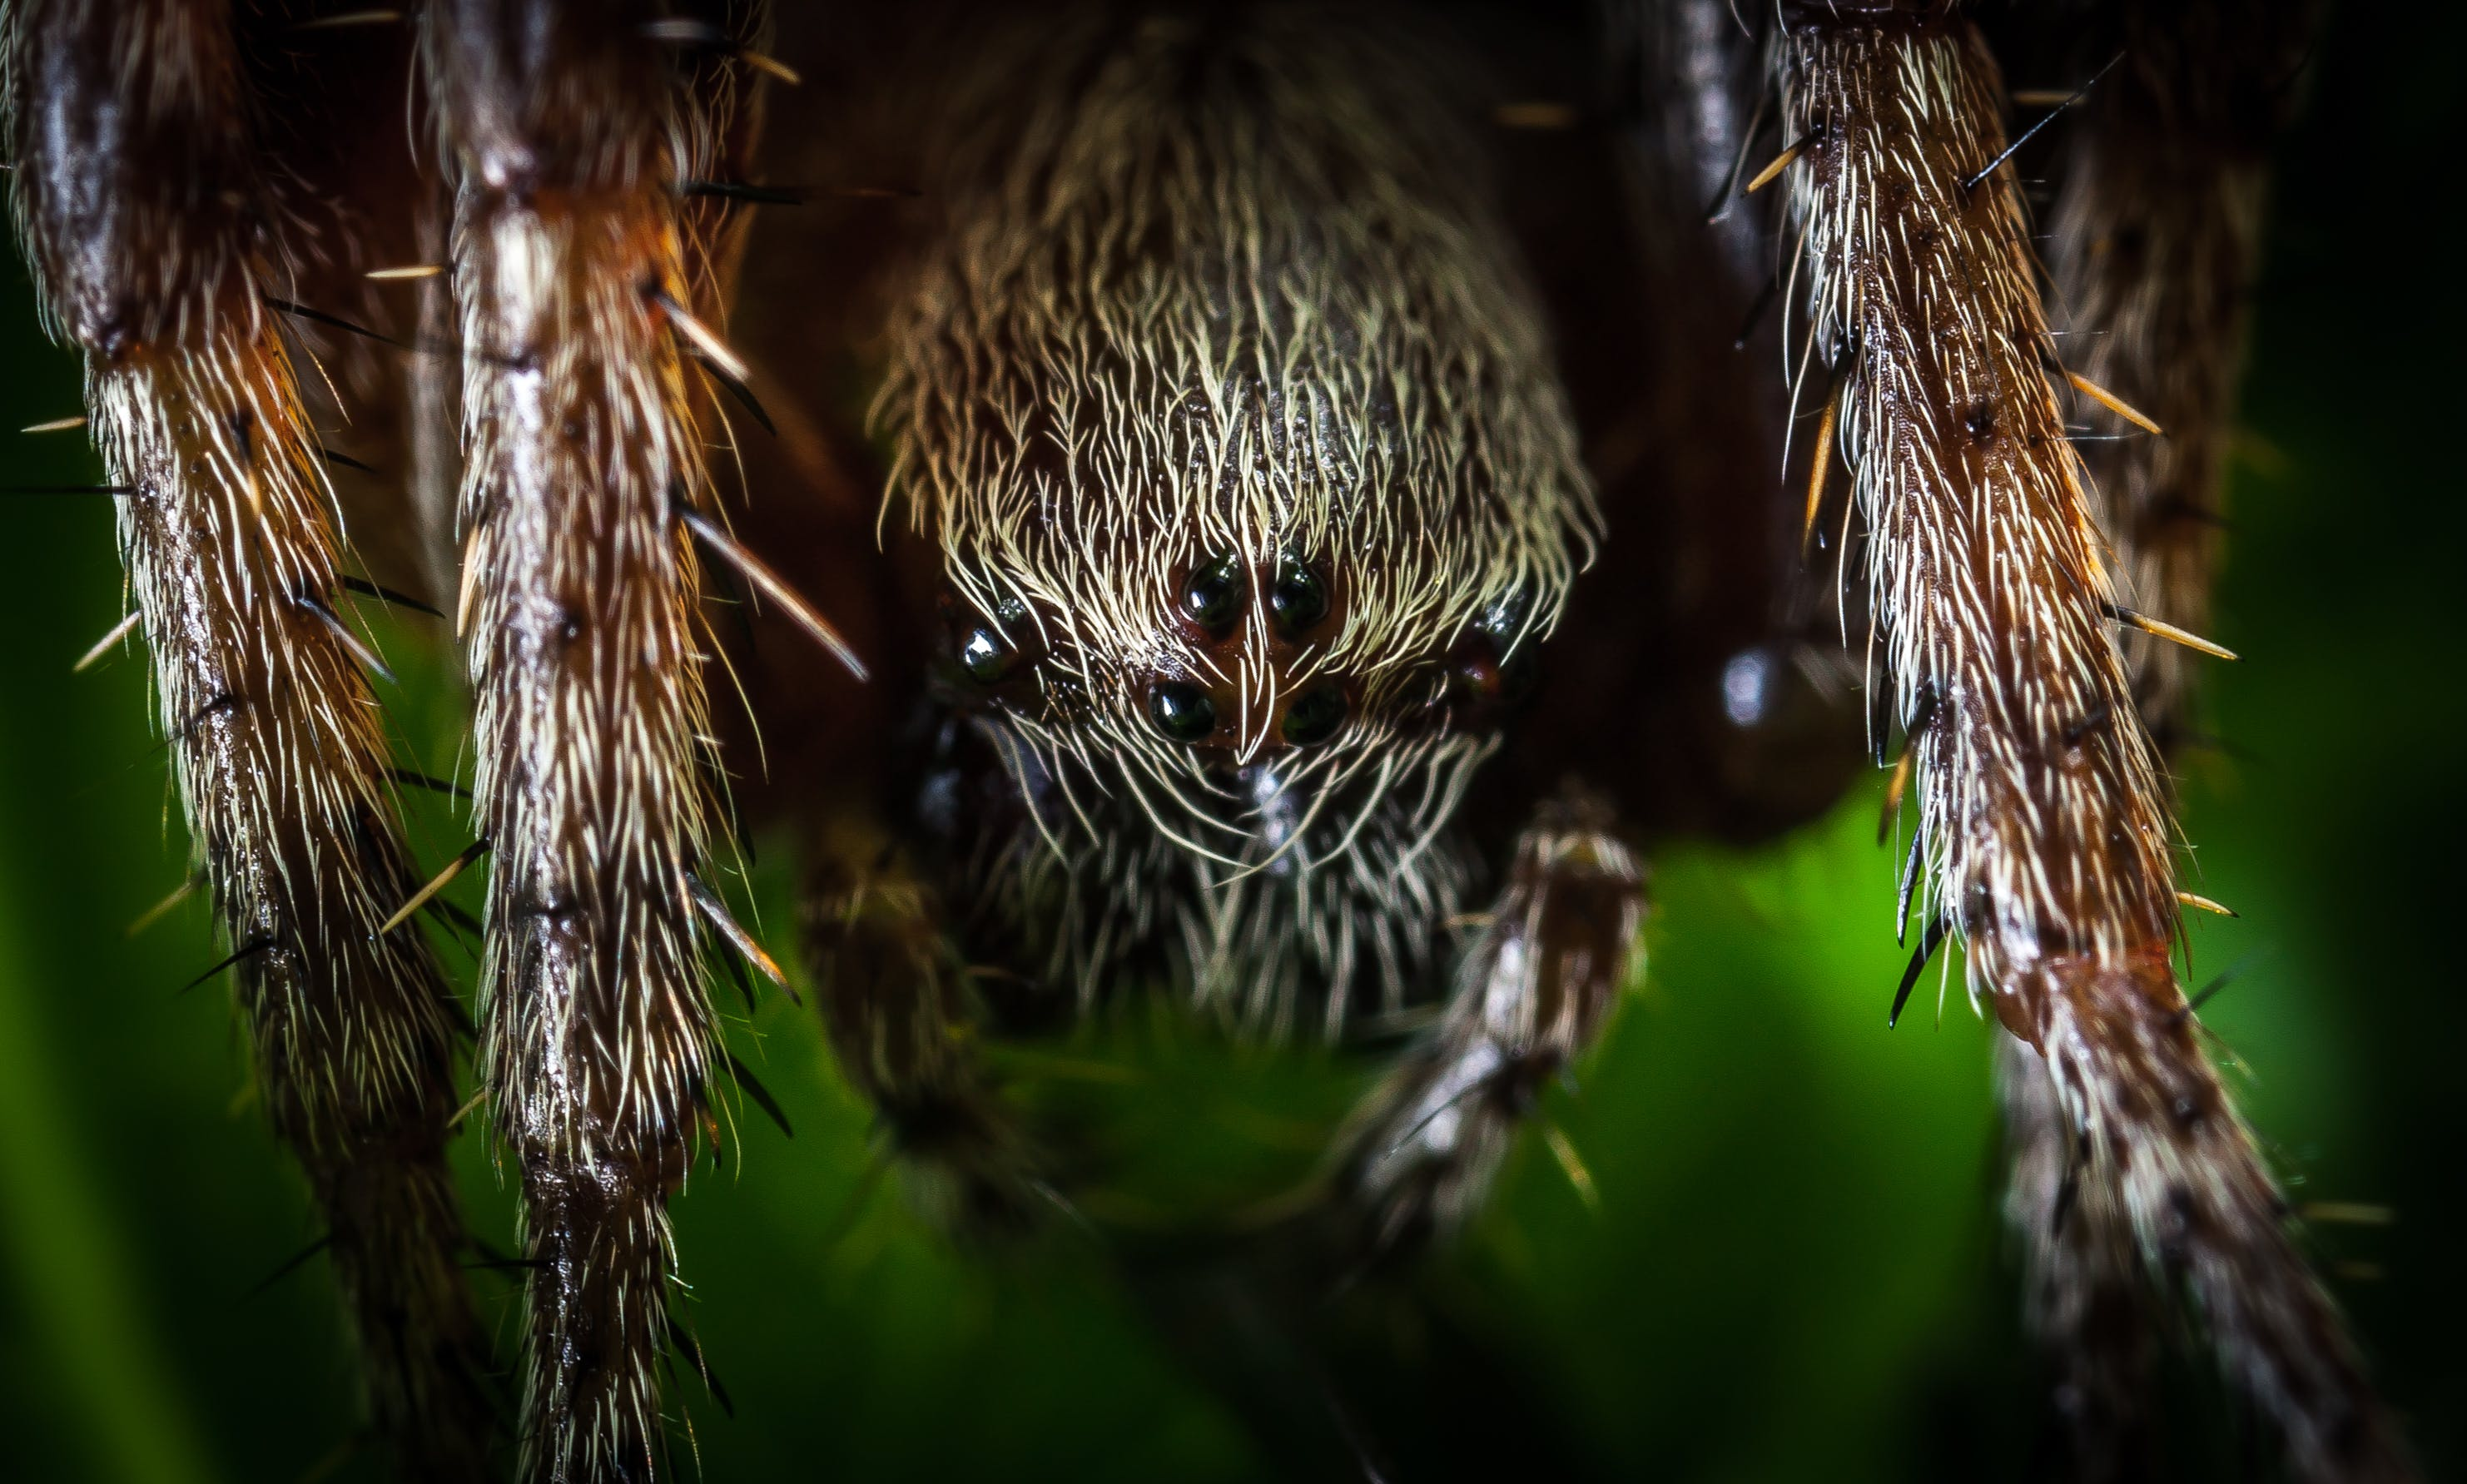 Macro Photography of Spider